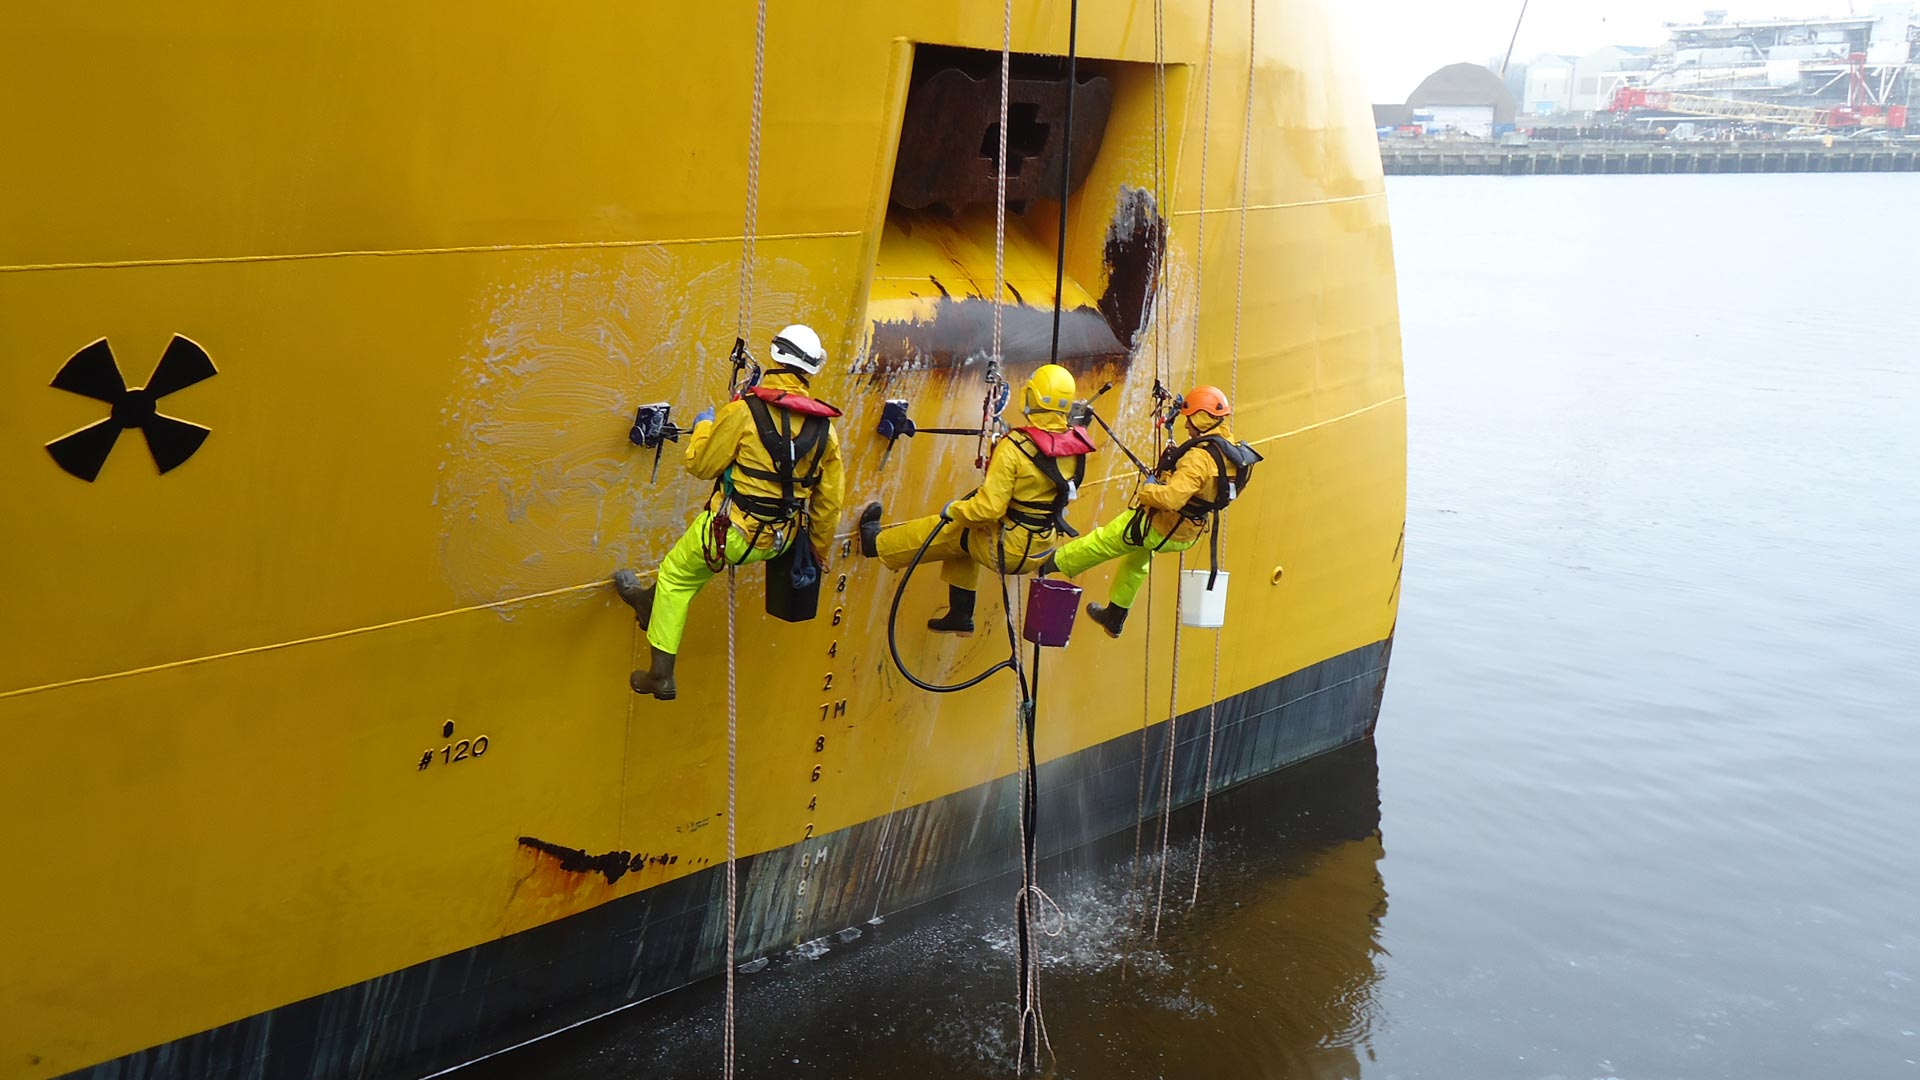 Specialist cleaning by rope access on the hull of a ship. Utilising Abfad's Magnetic Positioning Aid